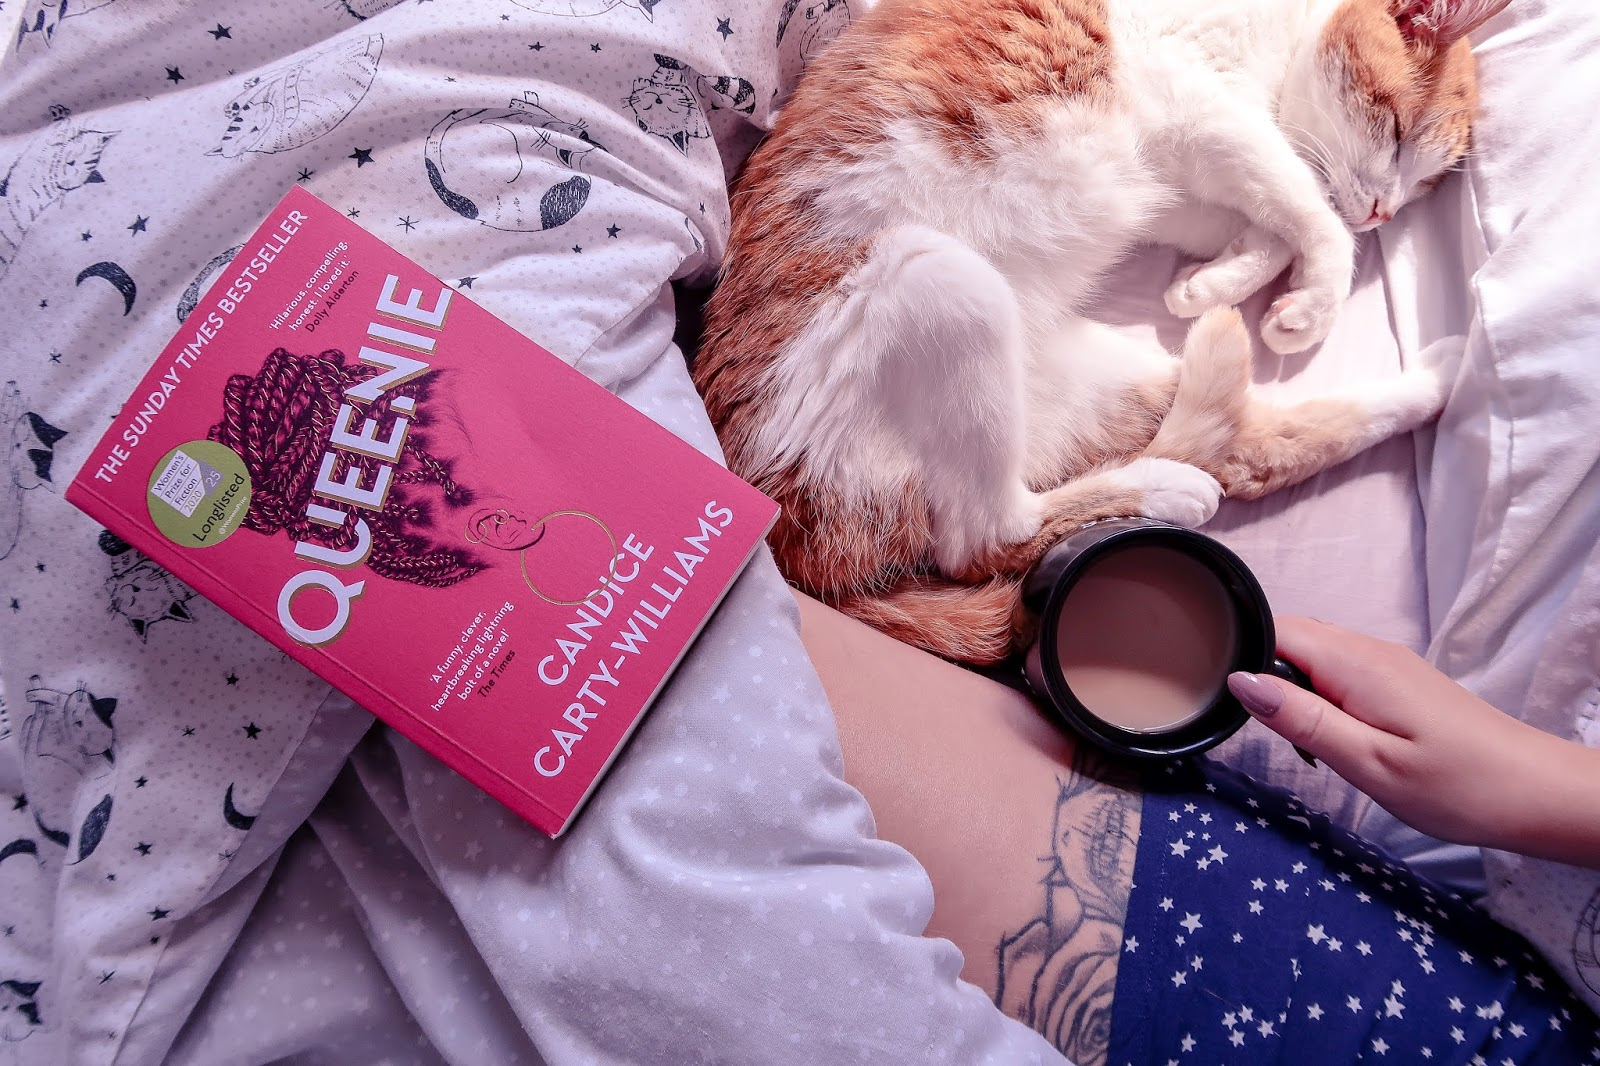 Birds eye view of Queenie by Candice Carty-Williams book, pink cover, on a bedsheet that is white with black cat outlines on it.